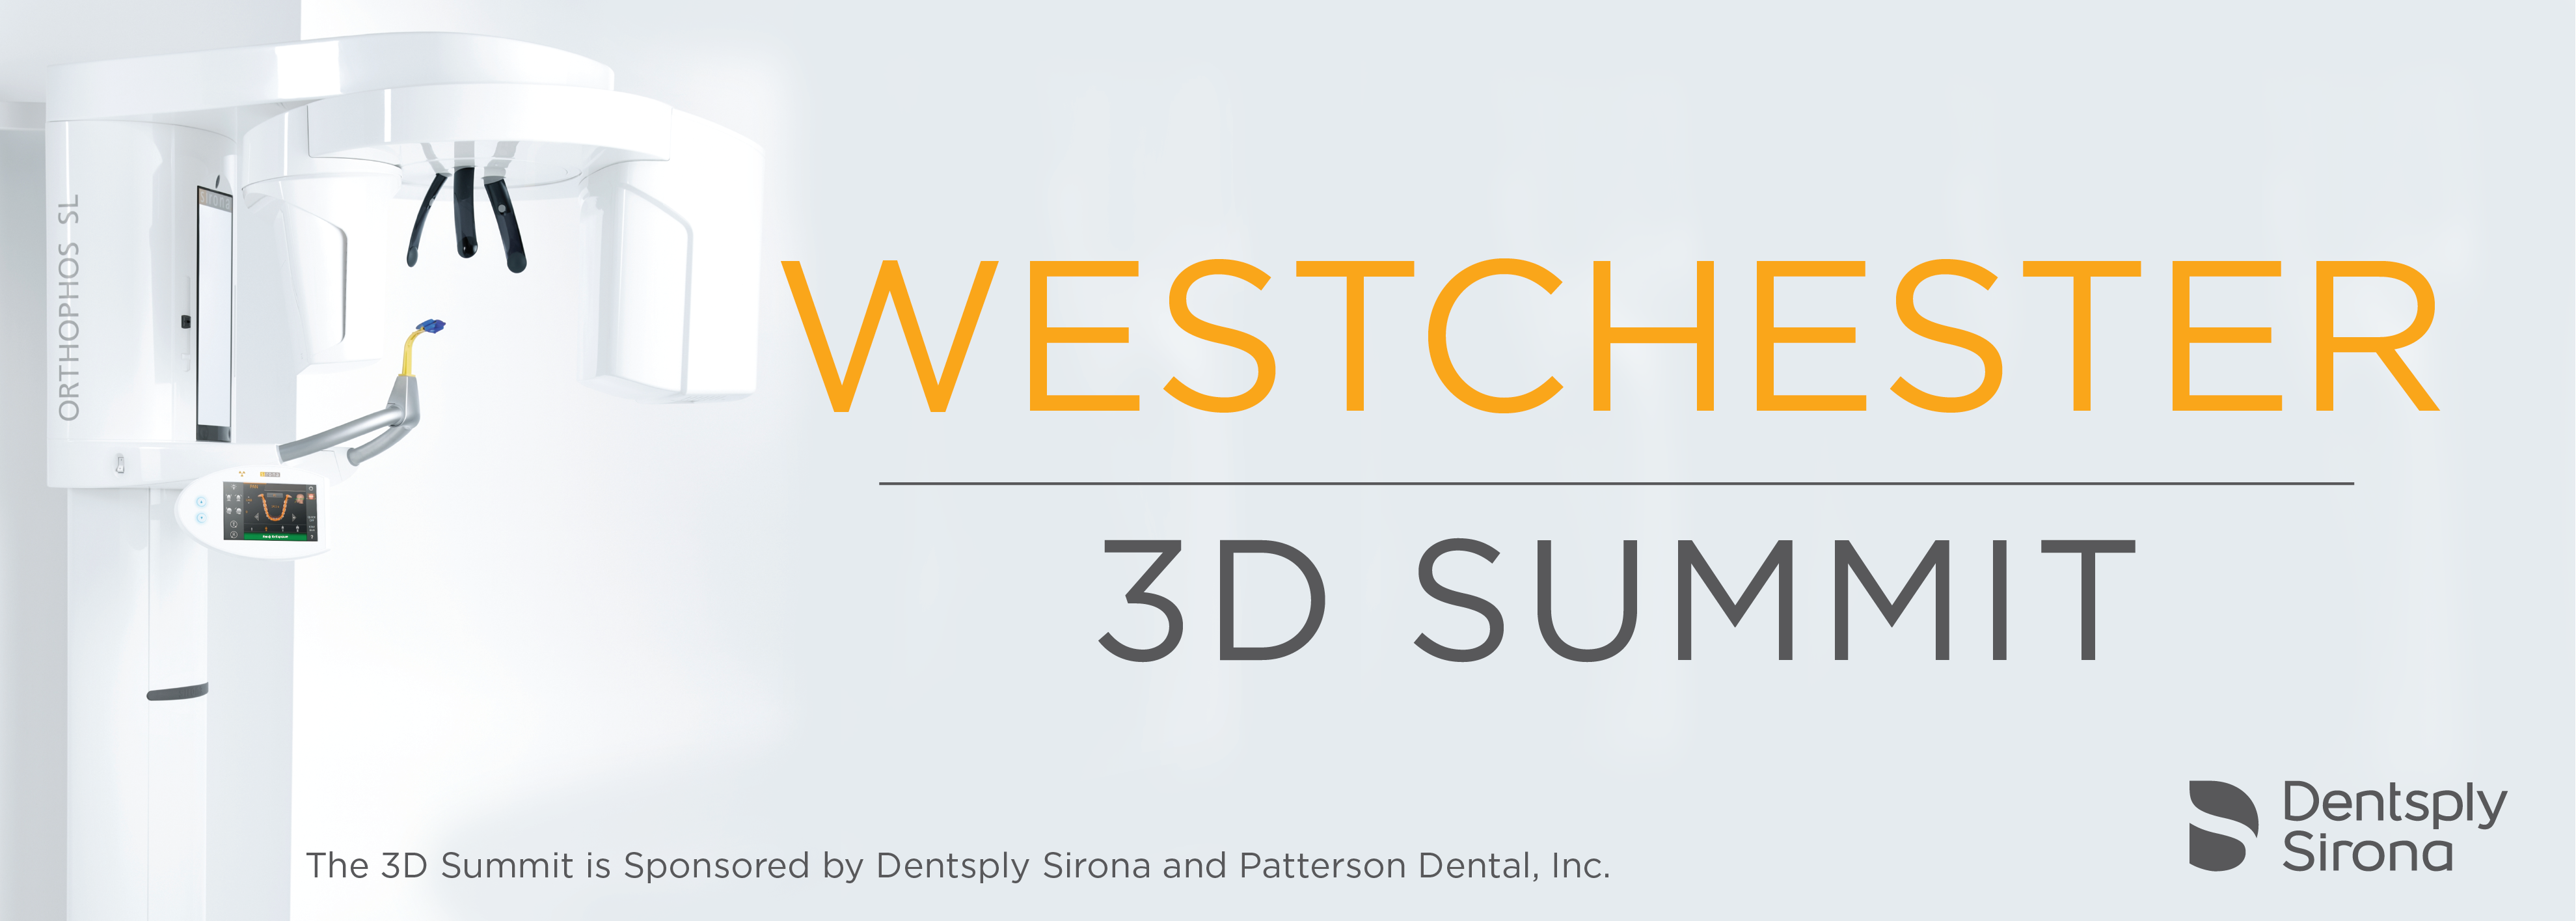 Westchester 3D Summit